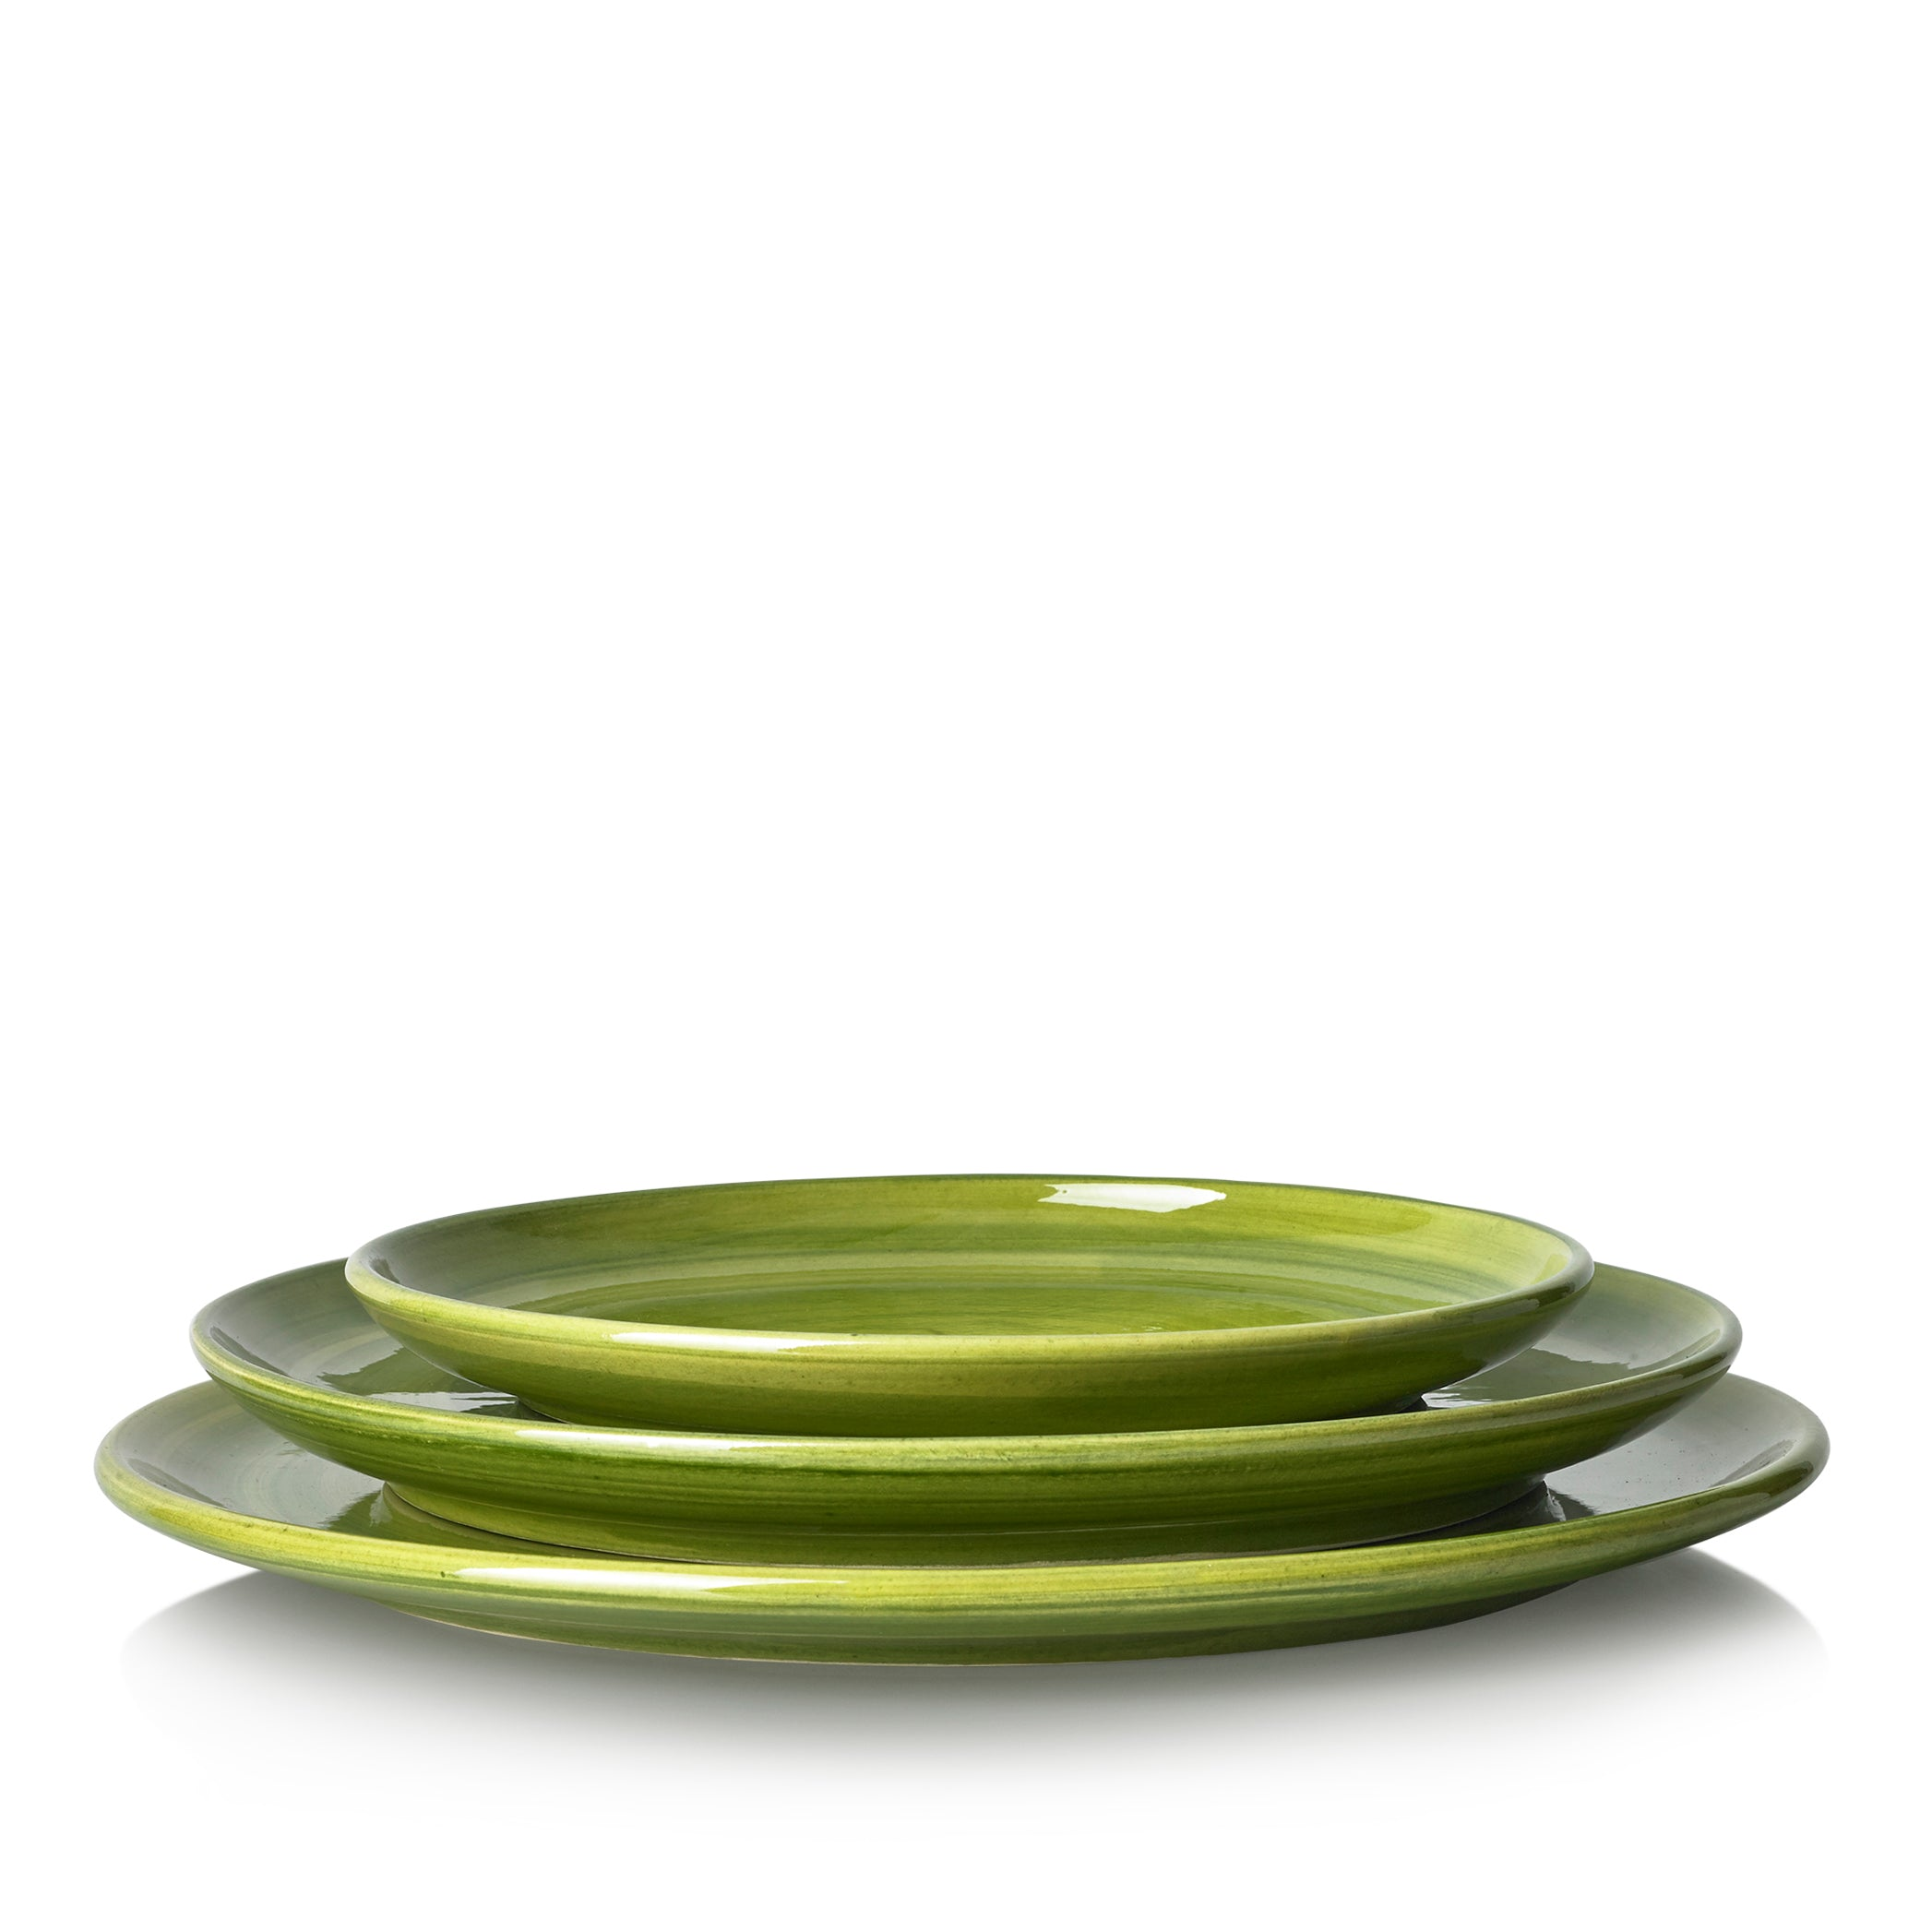 "S&B ""La Couronne"" 26cm Ceramic Dinner Plate in Green"